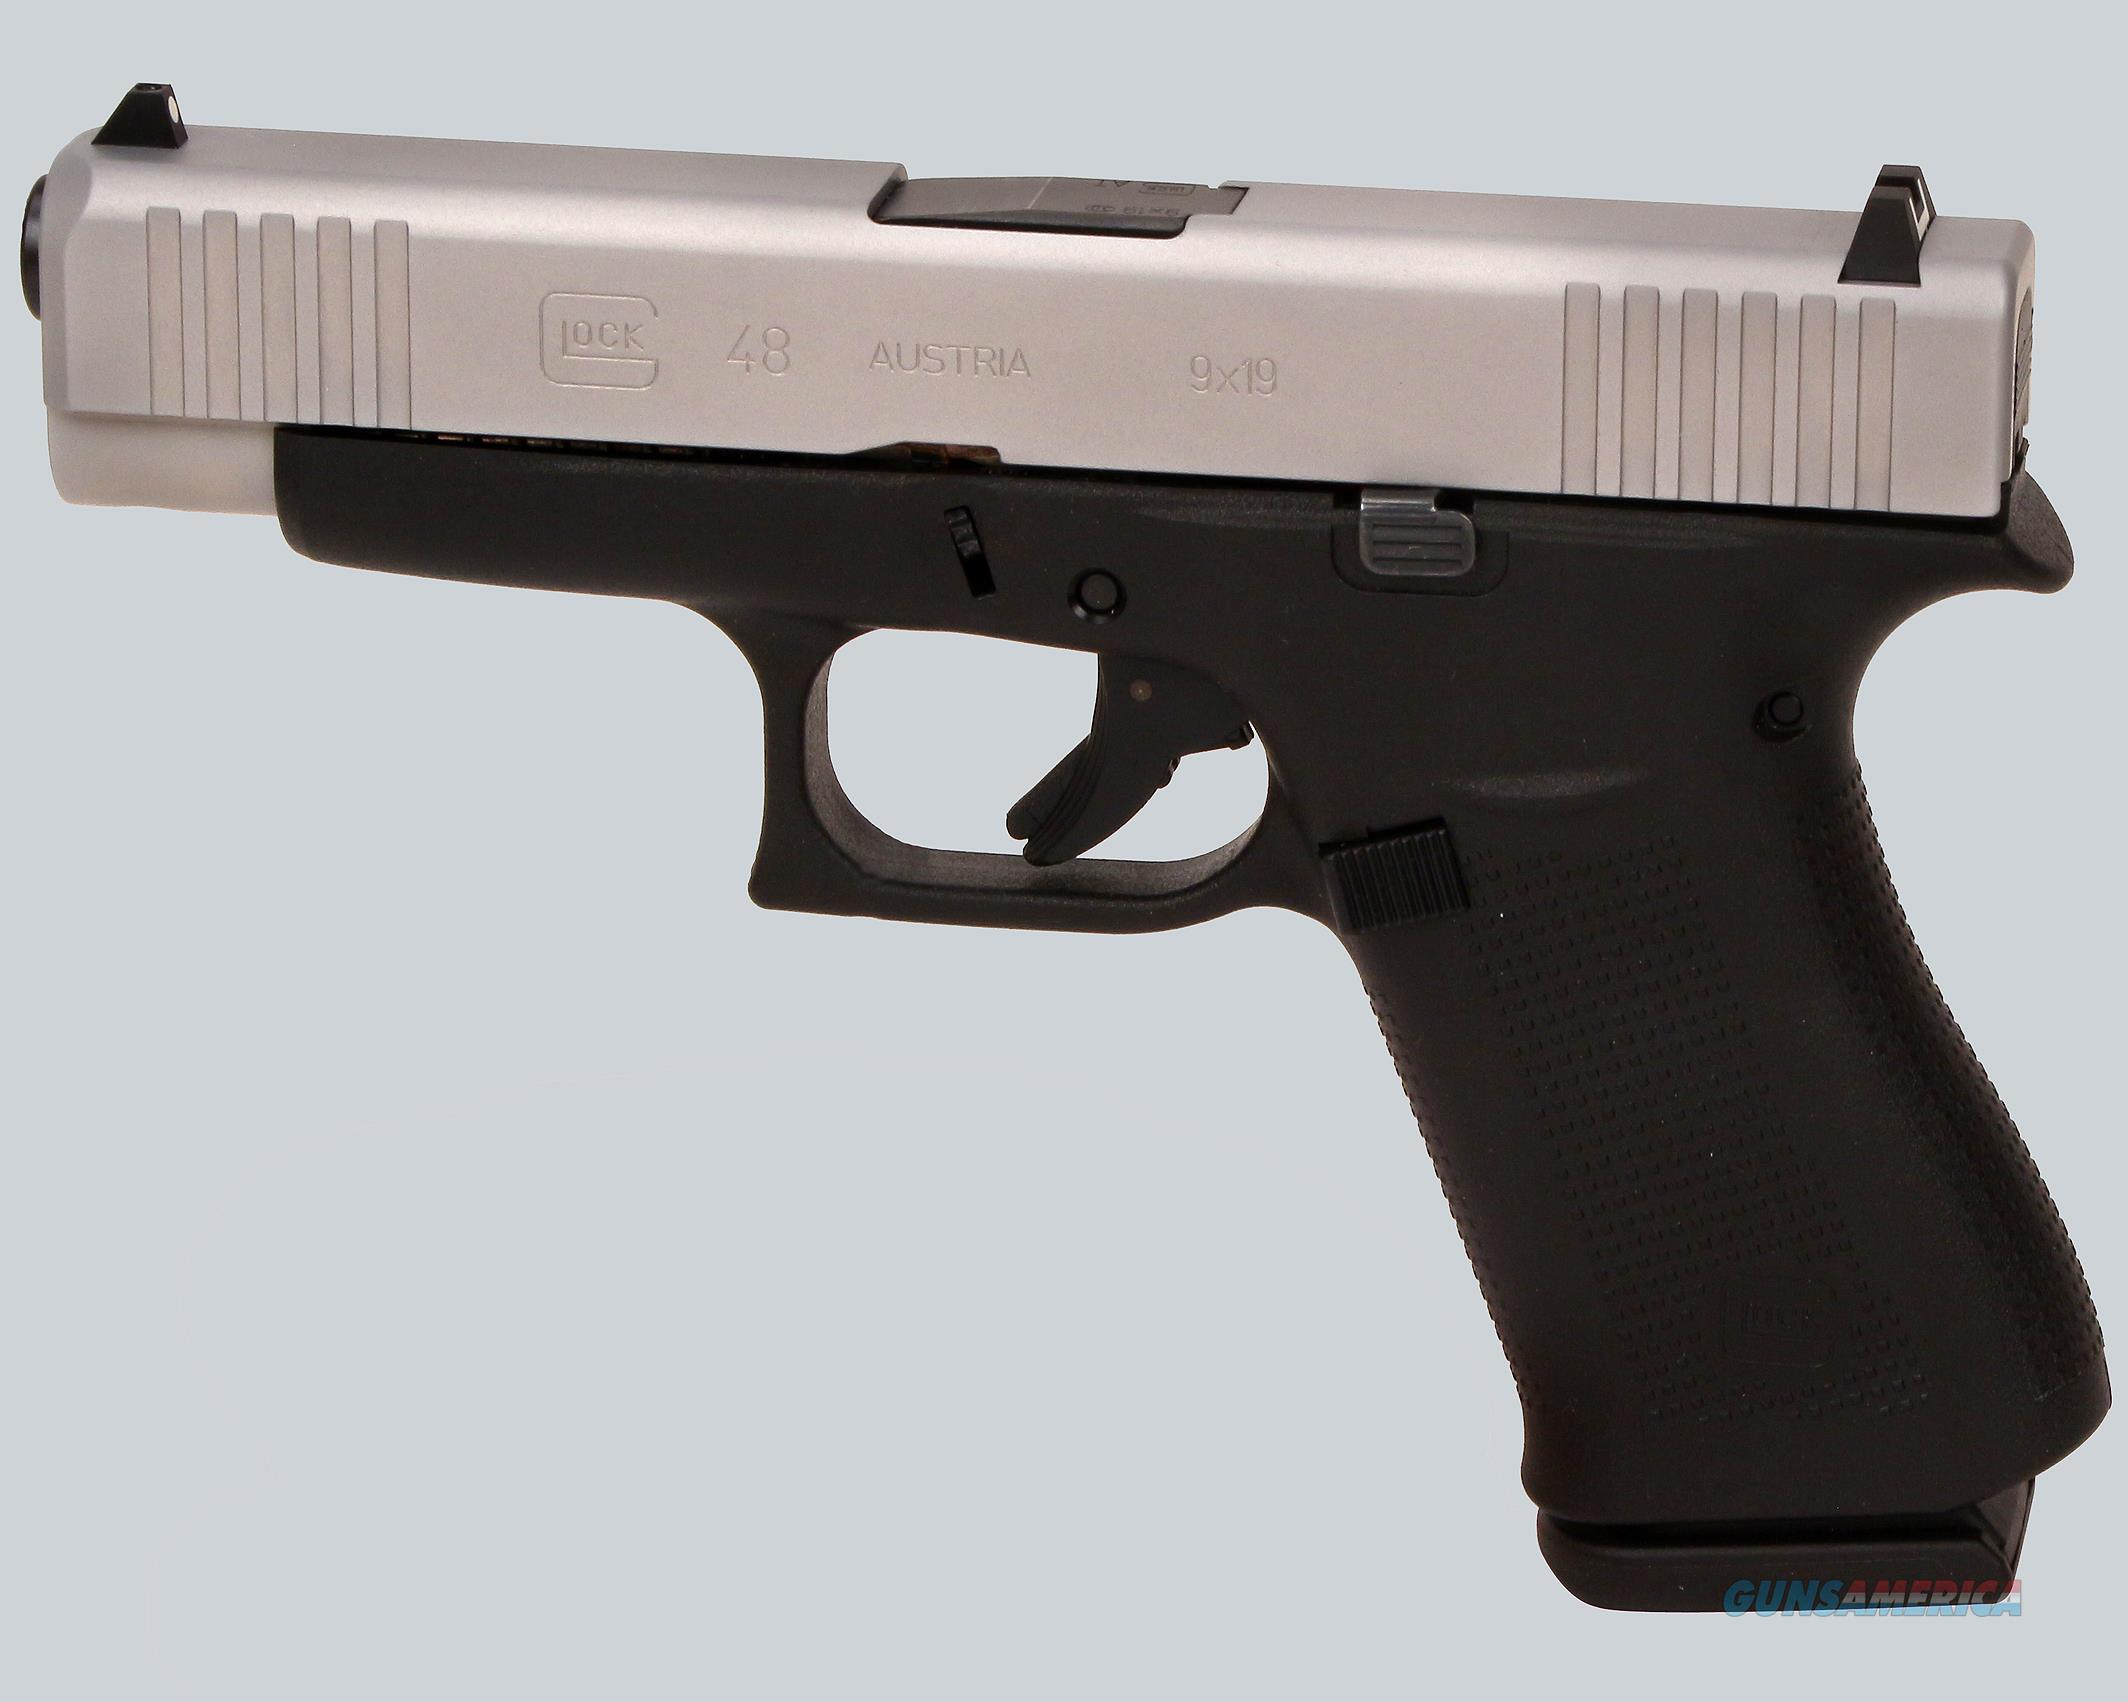 Glock 9mm Model 48 Pistol  Guns > Pistols > Glock Pistols > 43